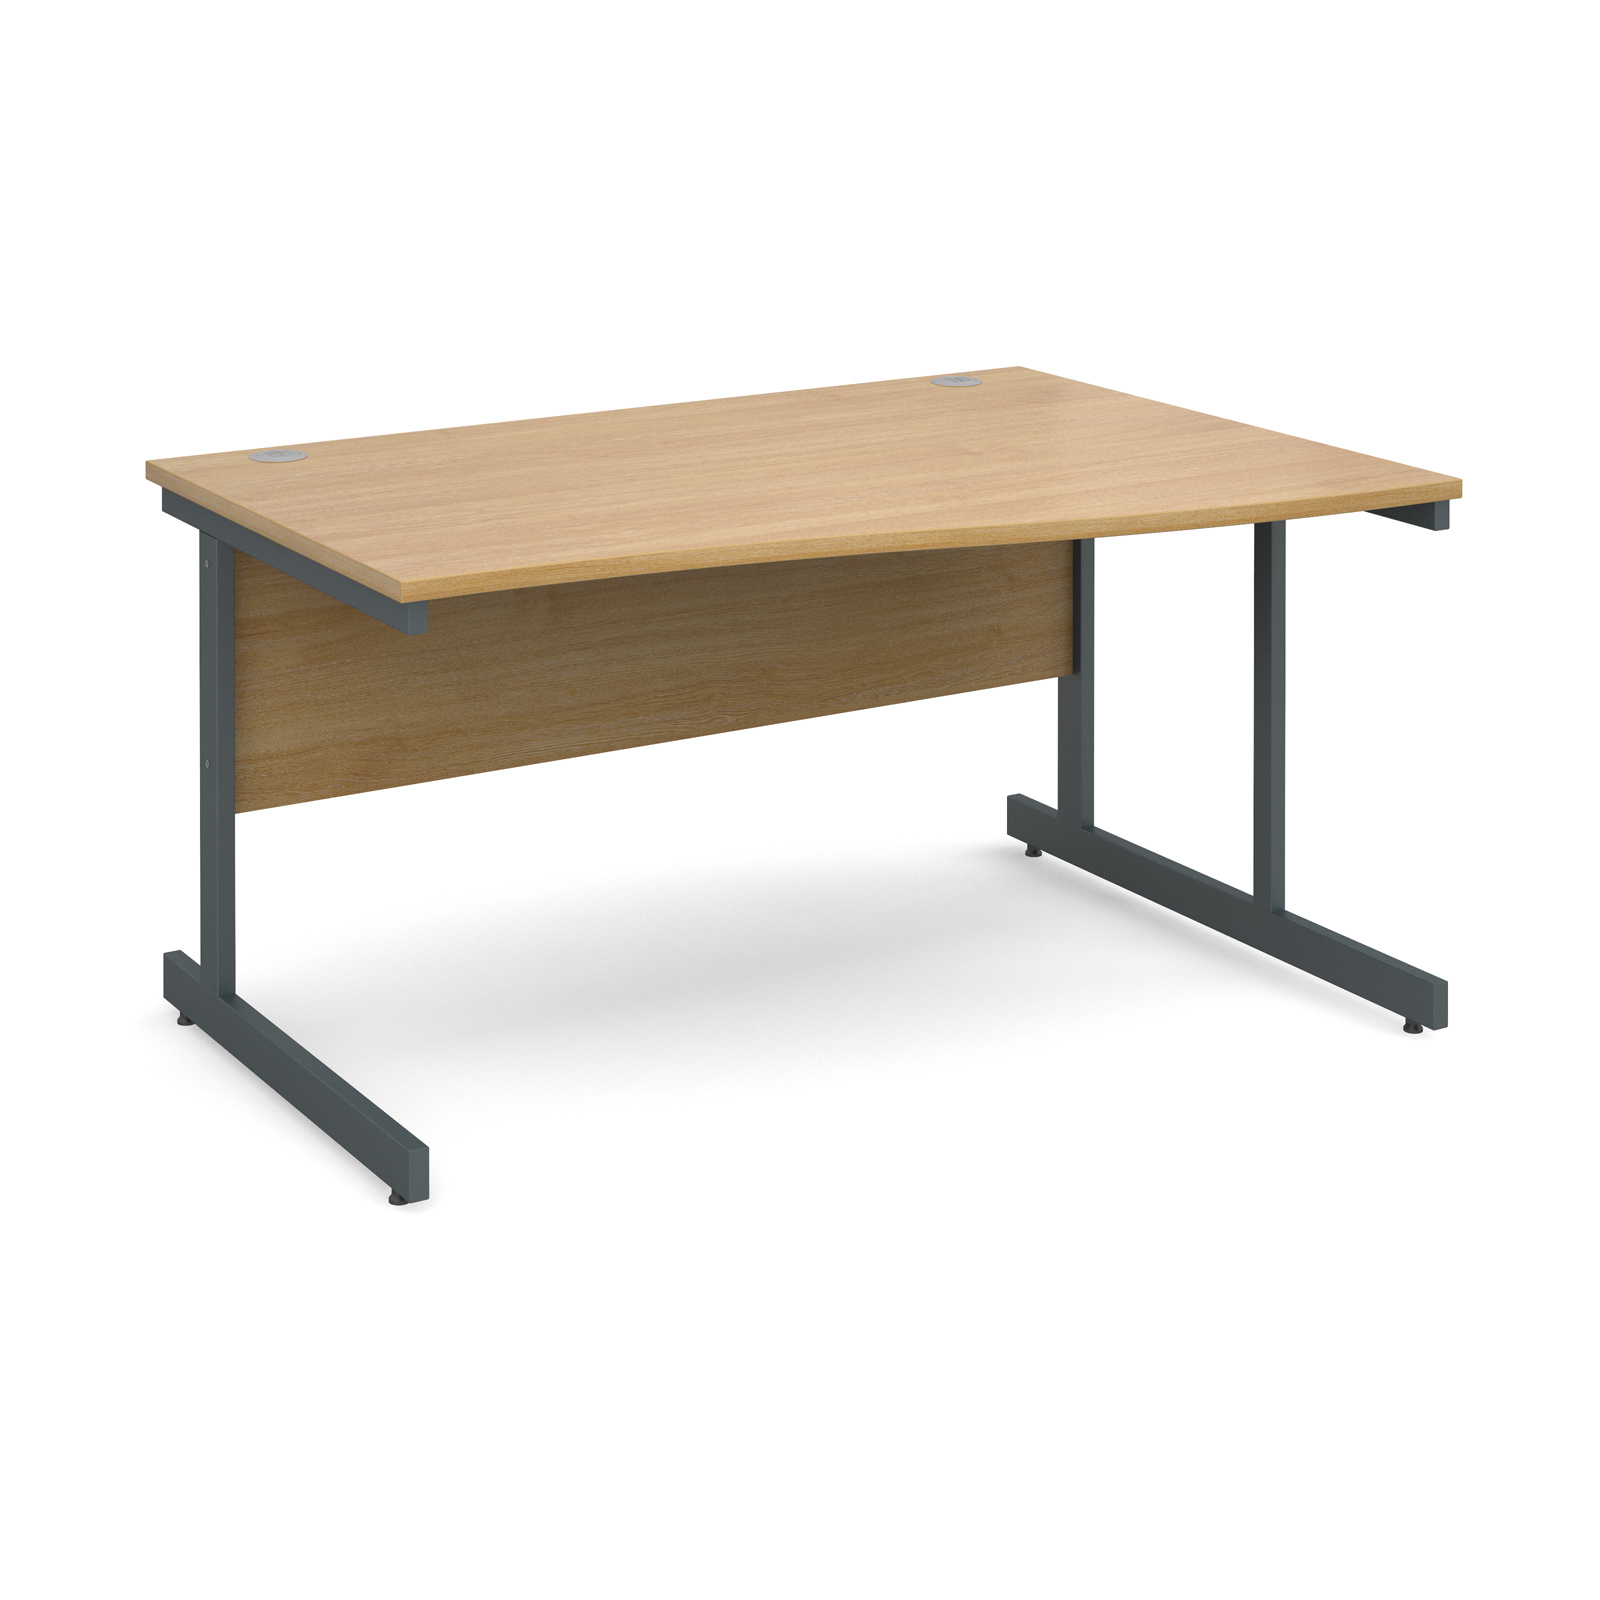 Contract 25 right hand wave desk 1400mm - graphite cantilever frame, oak top